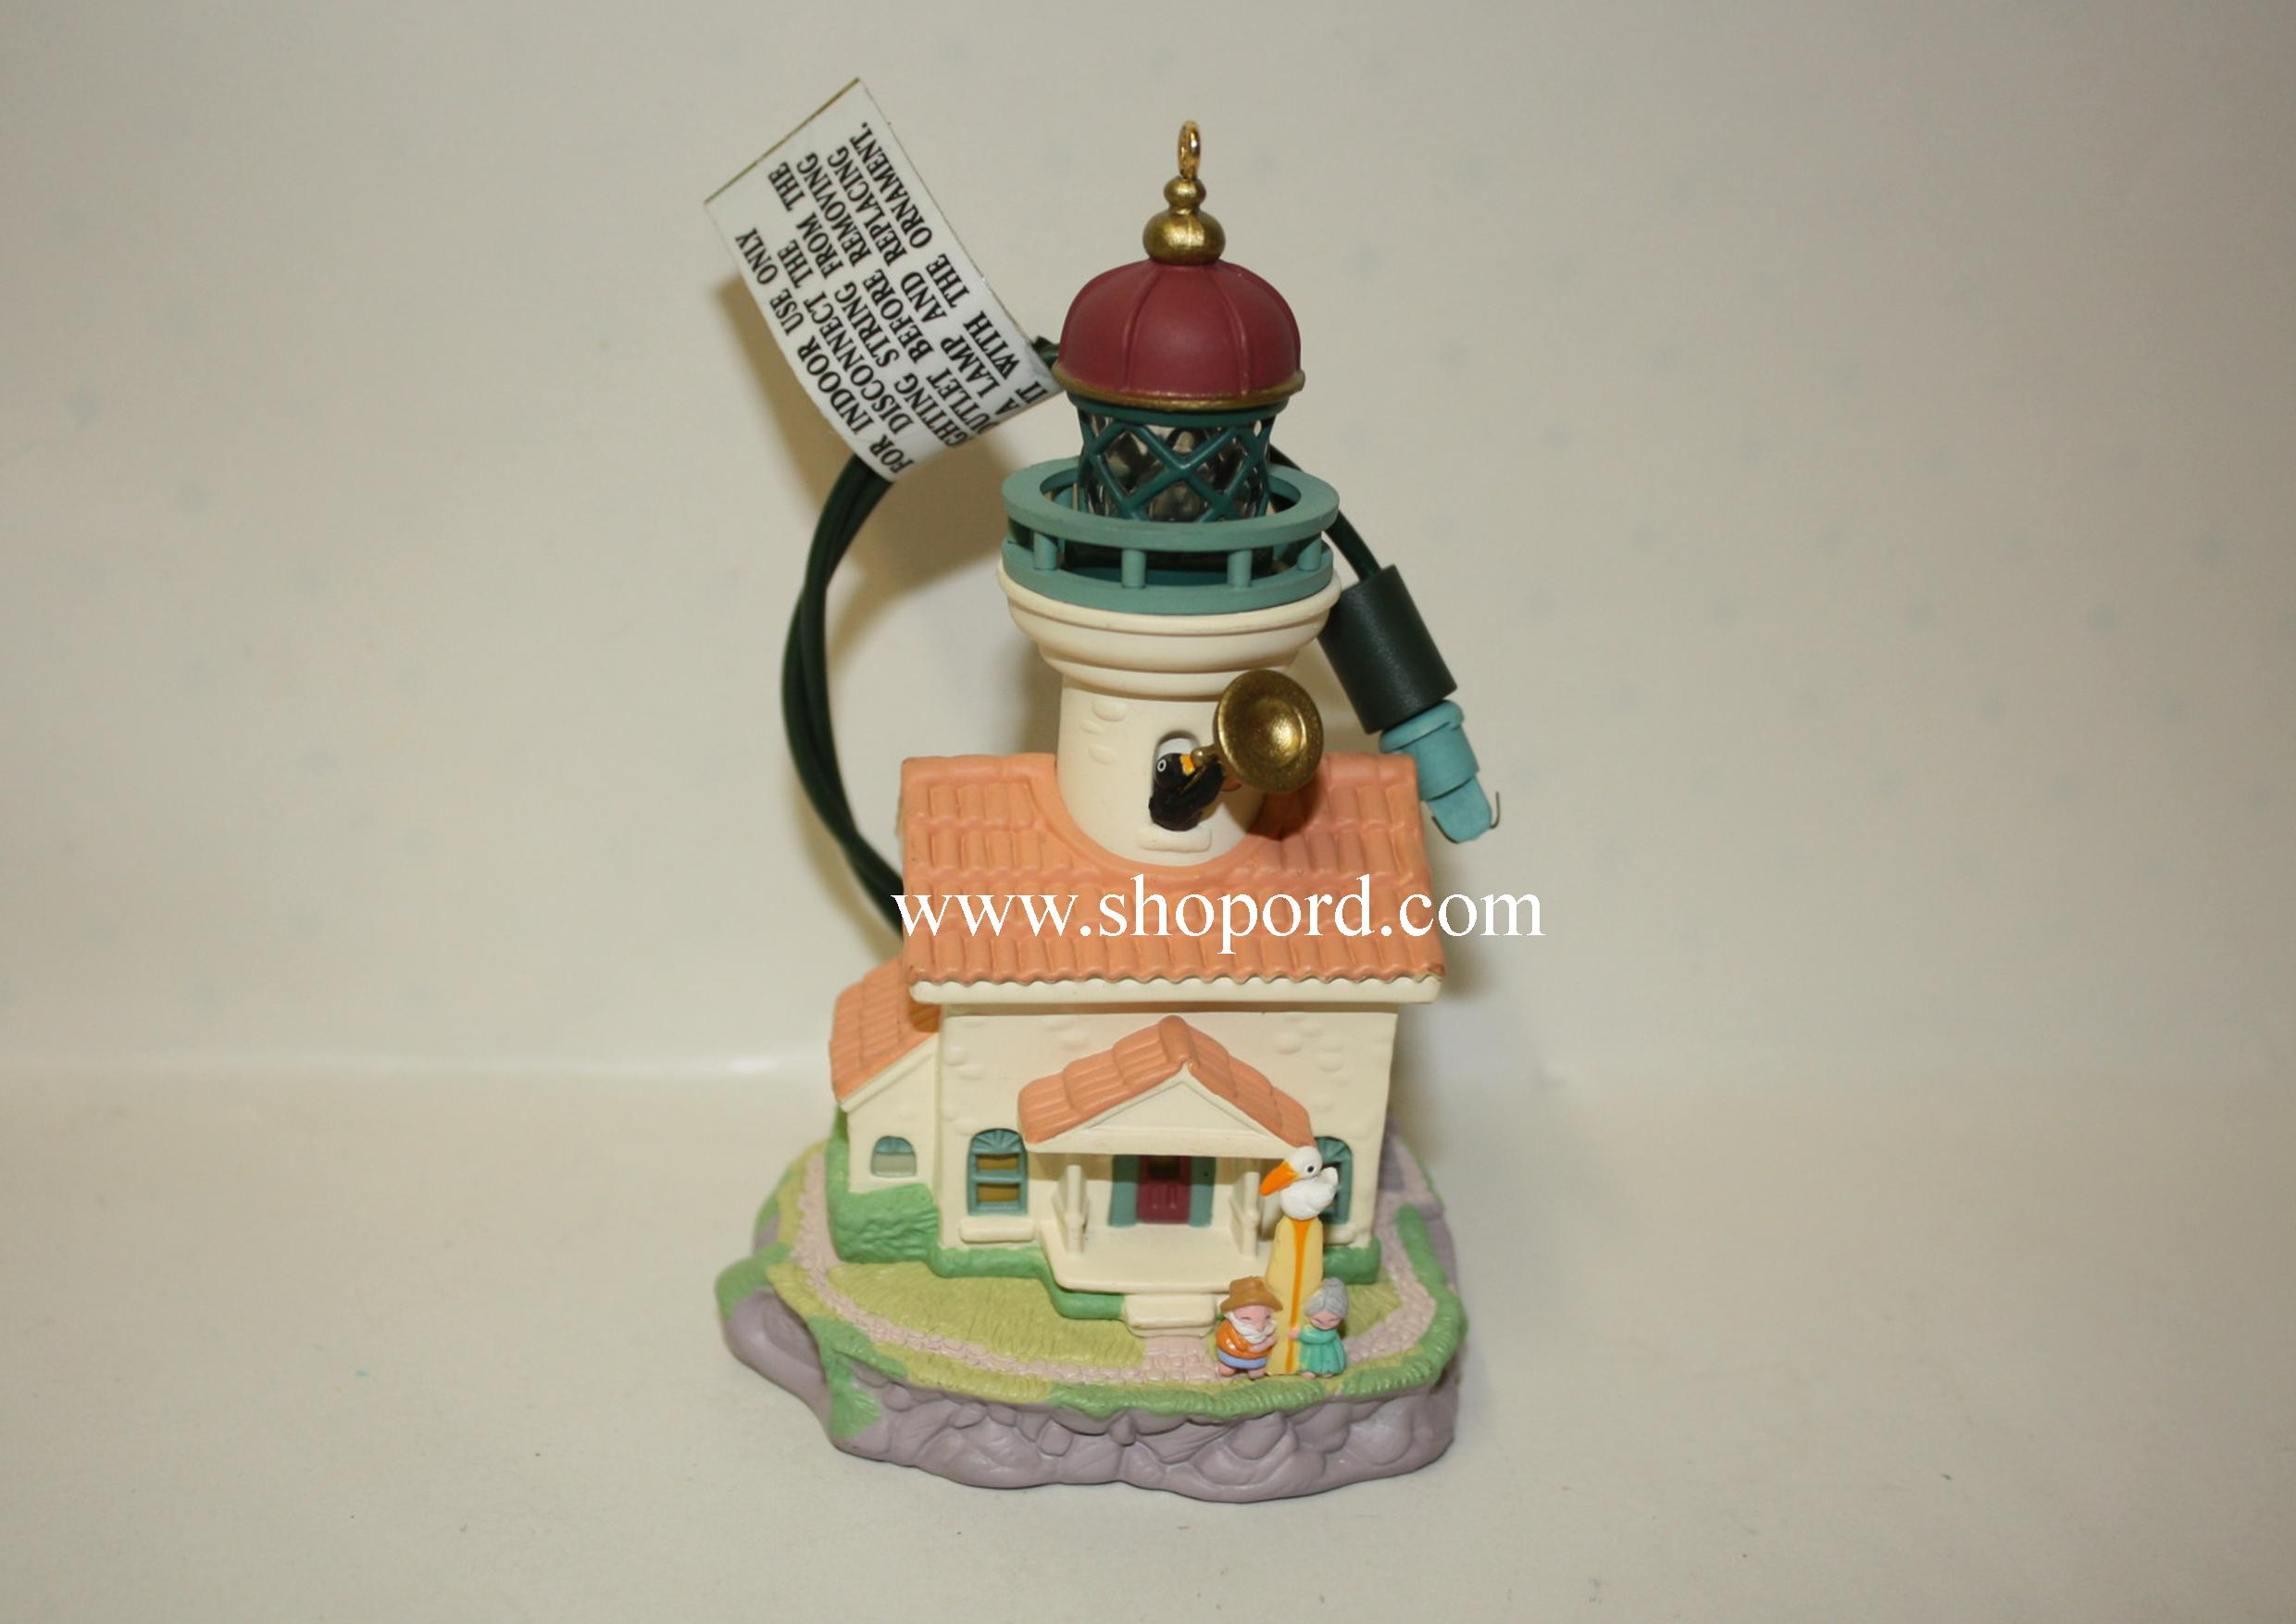 Hallmark 1998 Lighthouse Greetings Ornament 2nd In The Series QLX7536